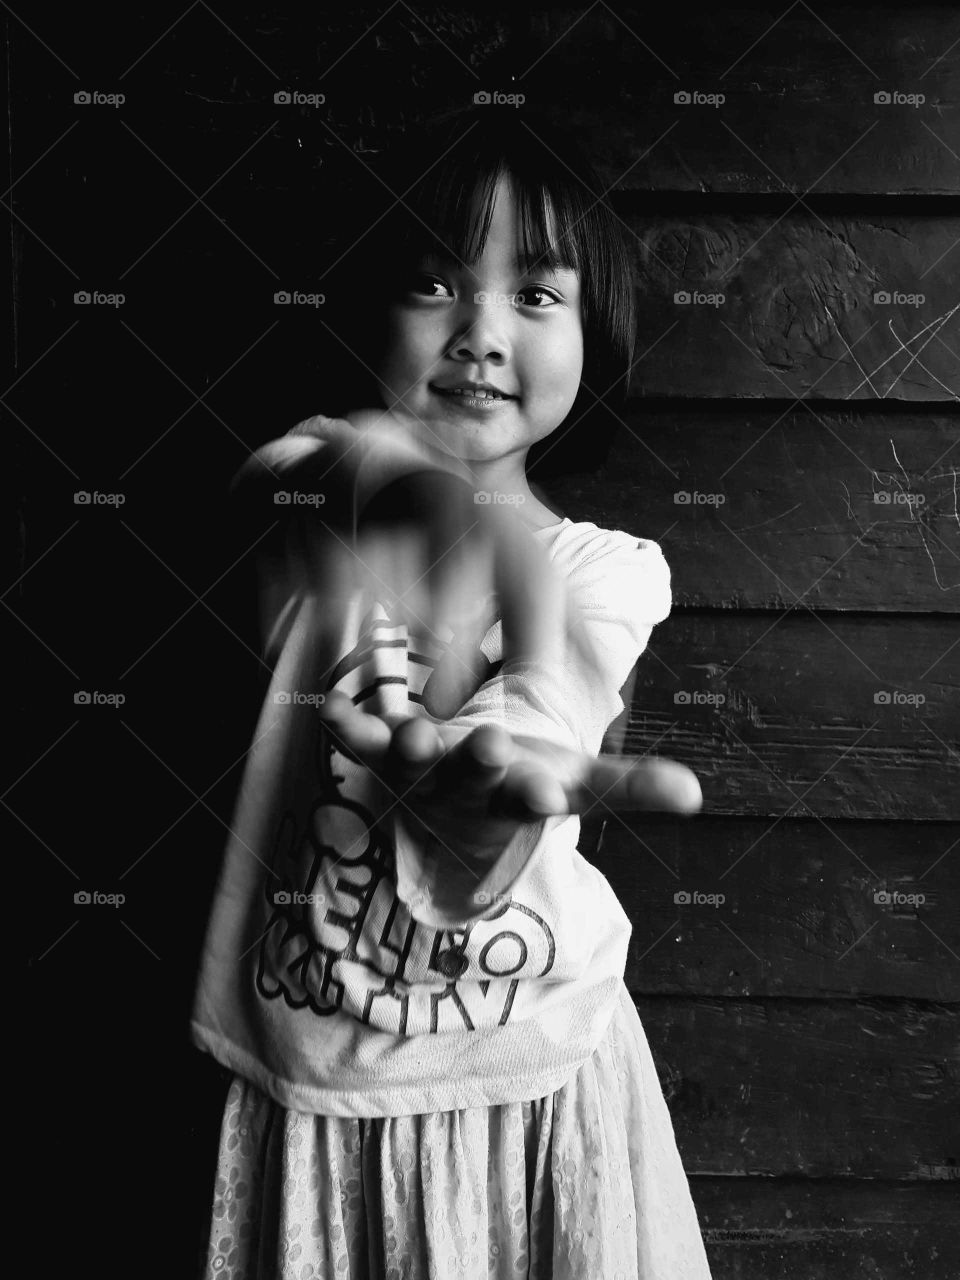 Nothing is better than to capture a kid's emotions when they are in their own world... here I was lucky enough to capture the playful mood and moment of my child.